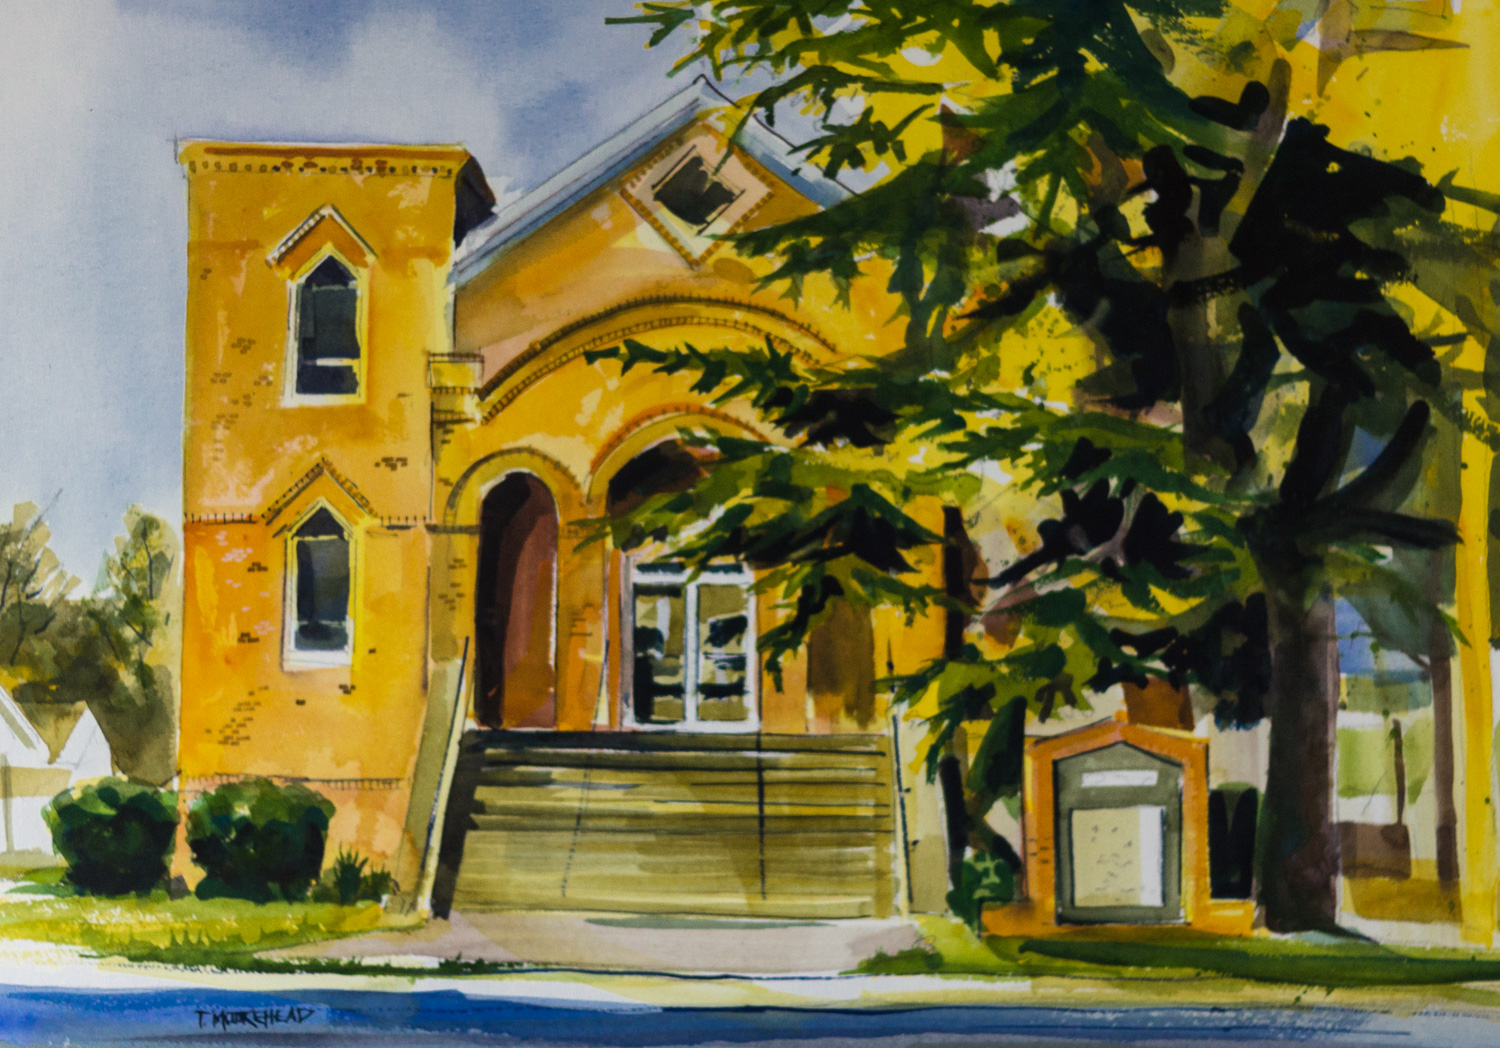 Mt. Canaan Baptist Church, by Tommy Moorehead, Watercolor on Paper, Puchased from the Artist